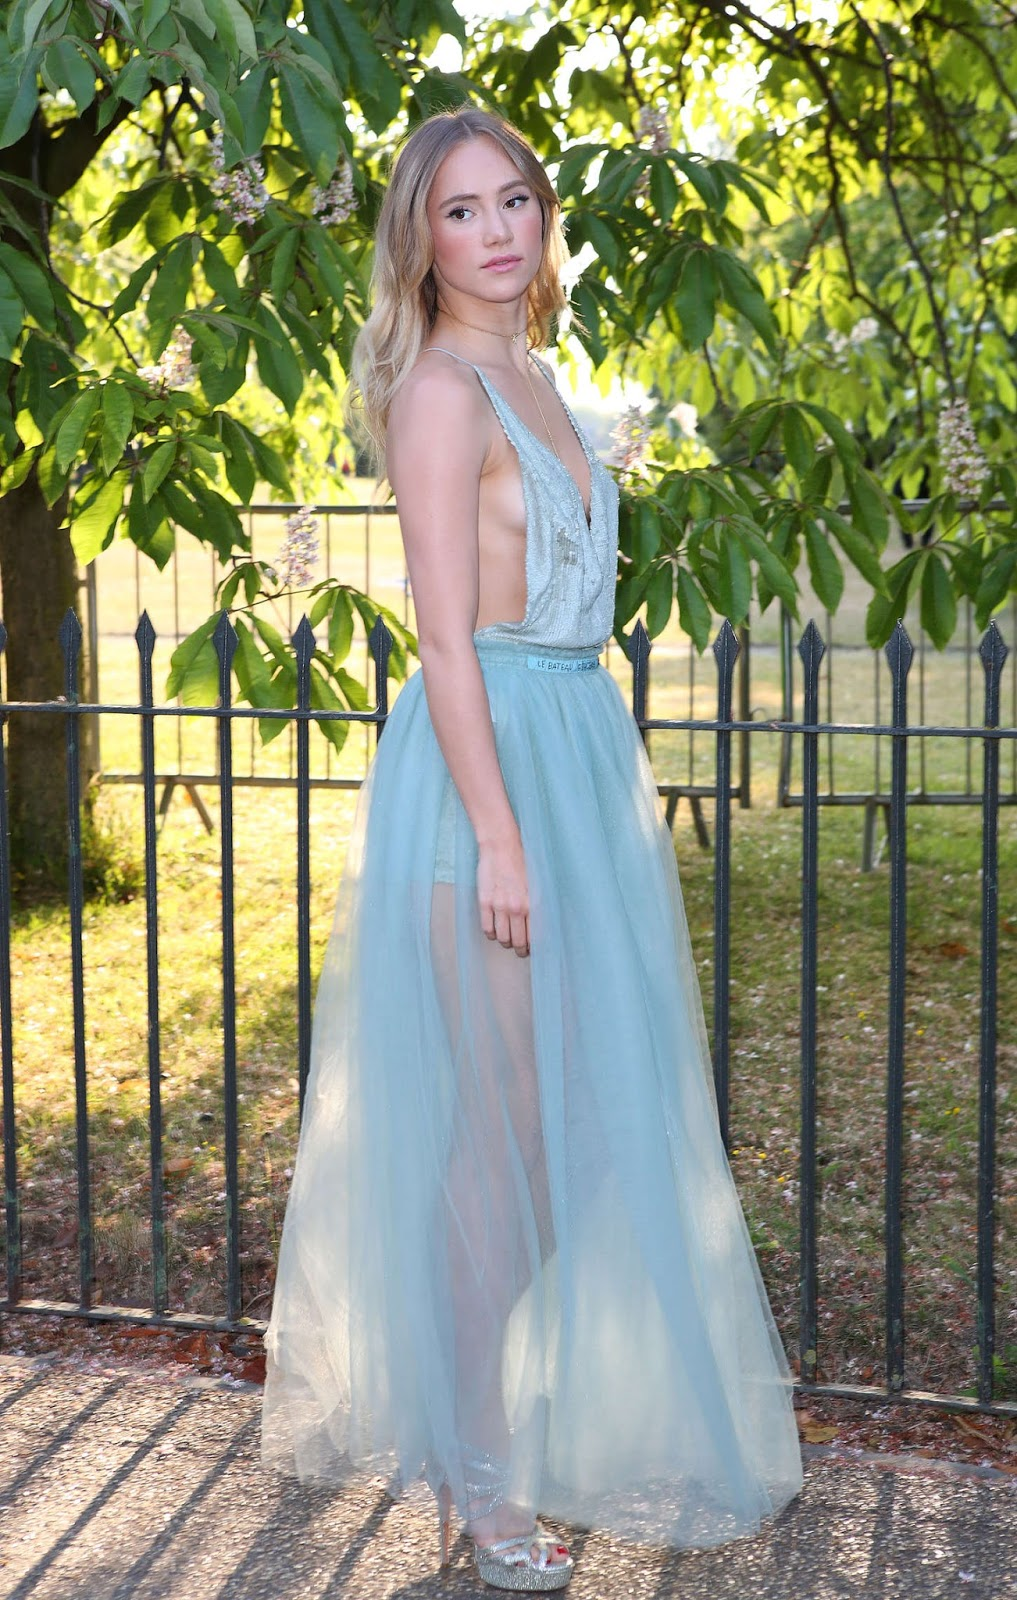 Suki Waterhouse – The Serpentine Gallery Summer Party in London